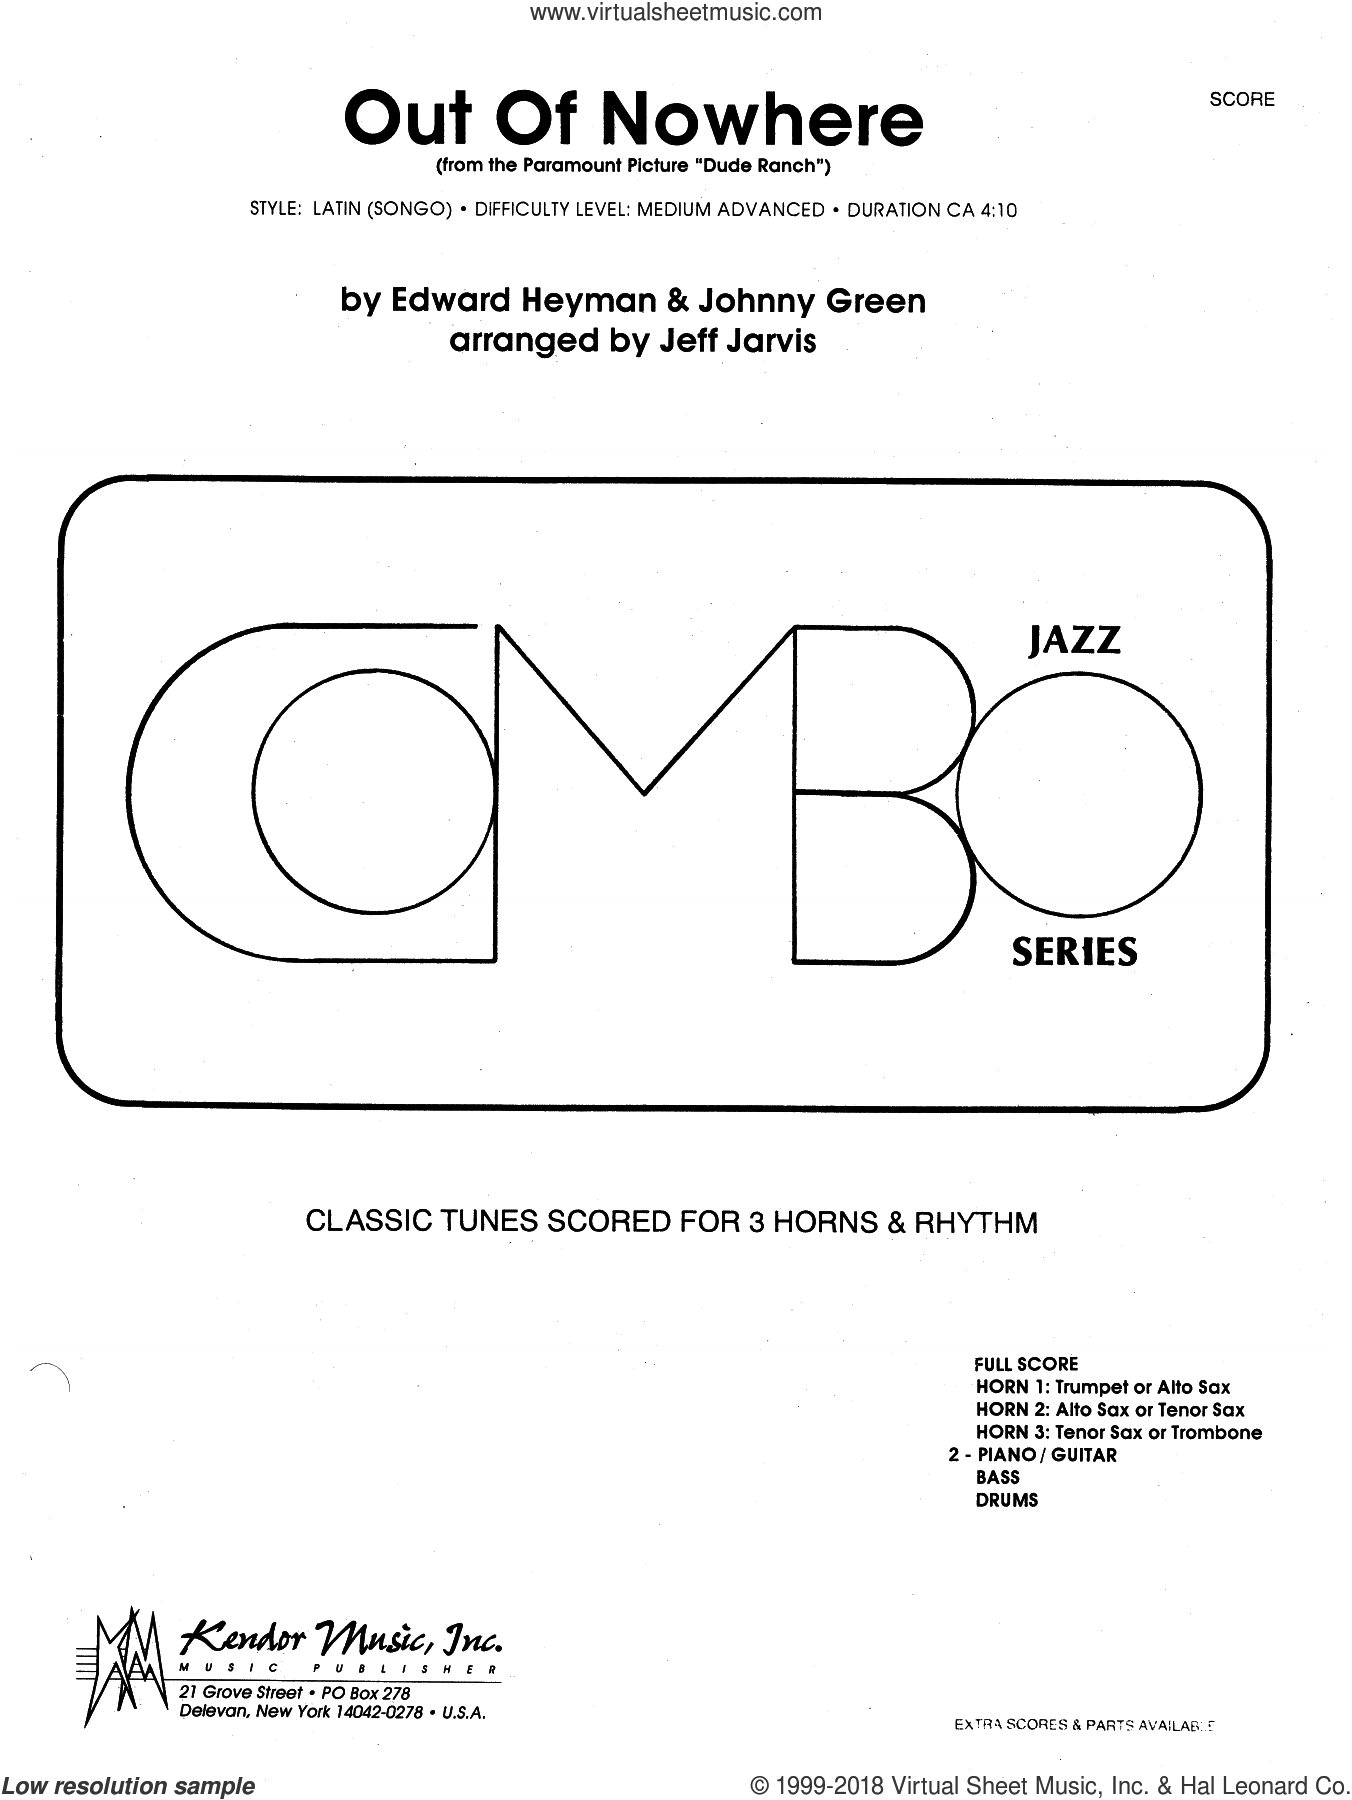 Out Of Nowhere (From The Paramount Picture Dude Ranch) (COMPLETE) sheet music for jazz band by Jeff Jarvis and Heyman & Green, intermediate skill level